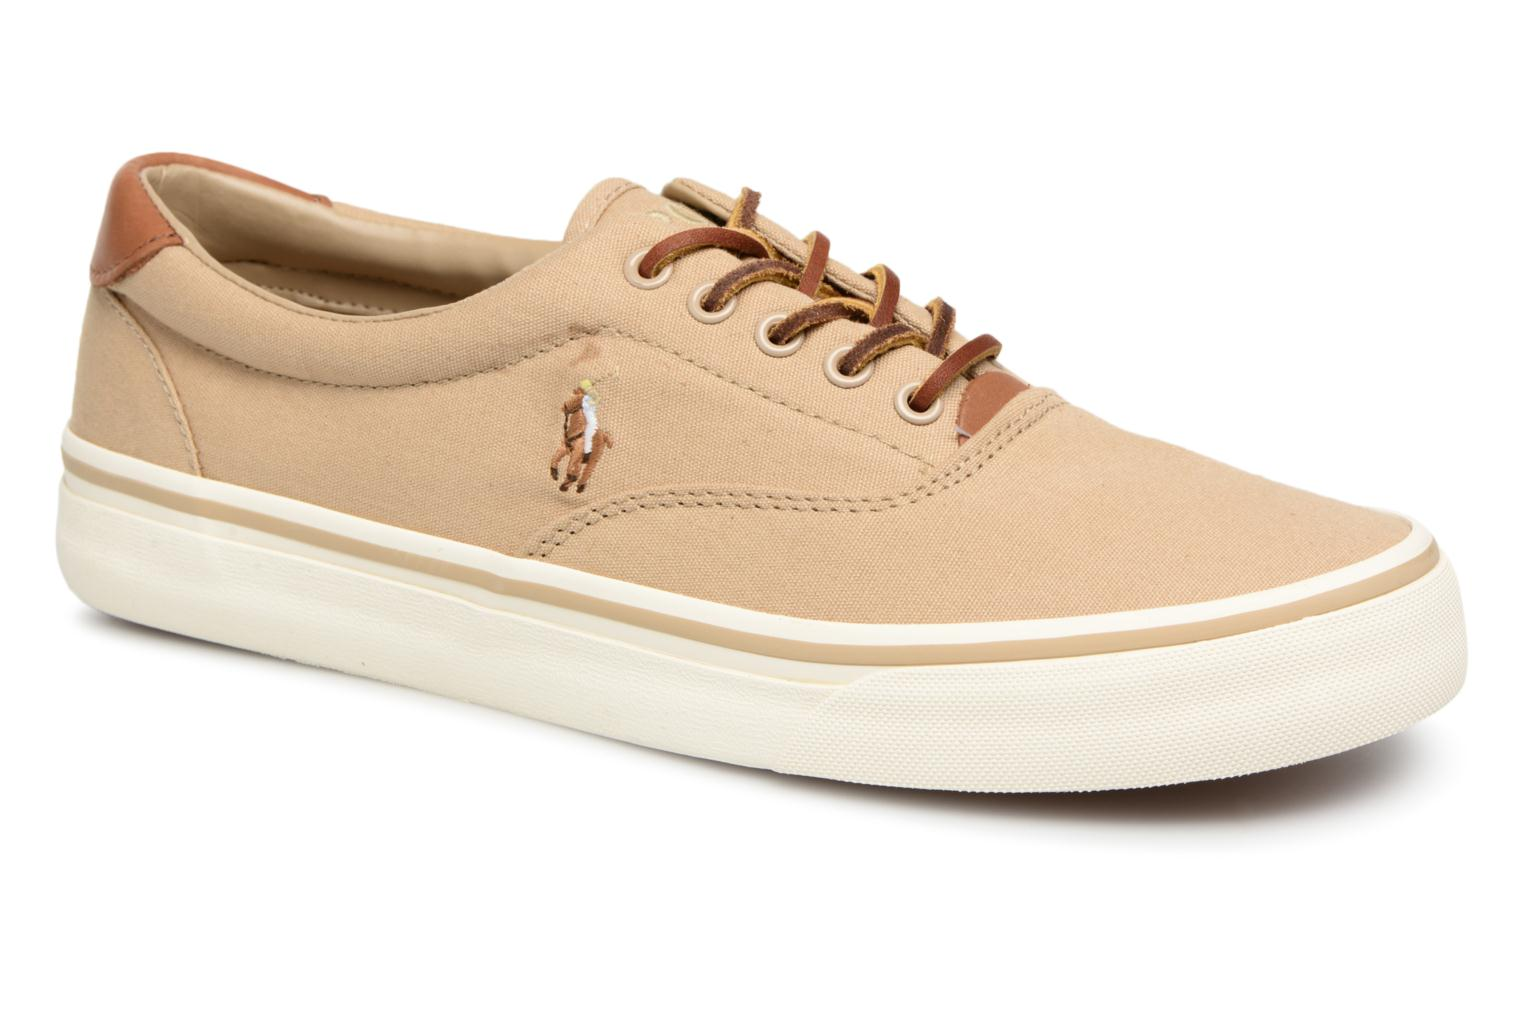 Sneakers Polo Ralph Lauren Beige